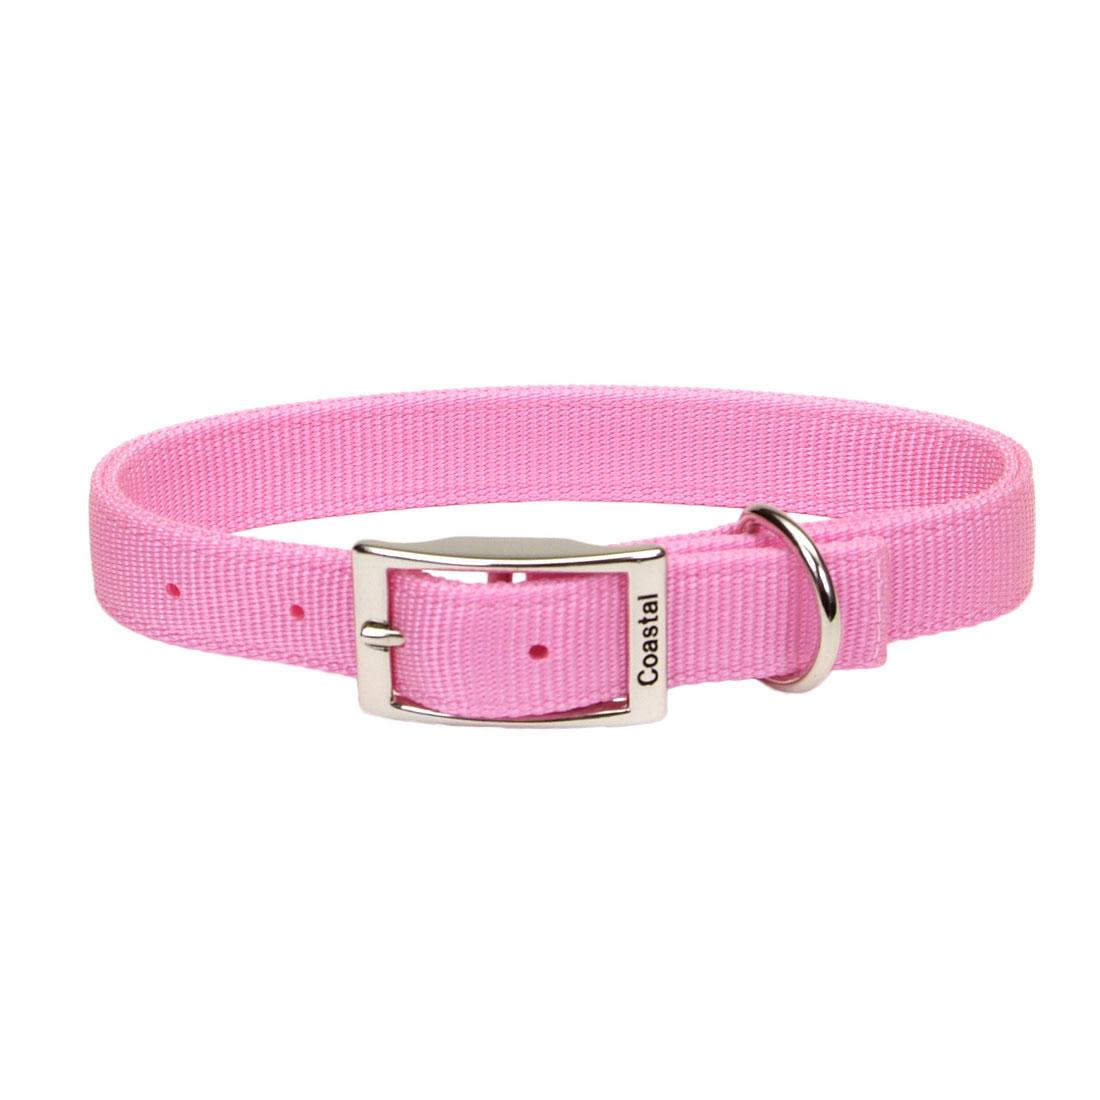 Coastal Double-Ply Dog Collar, Pink Bright Image